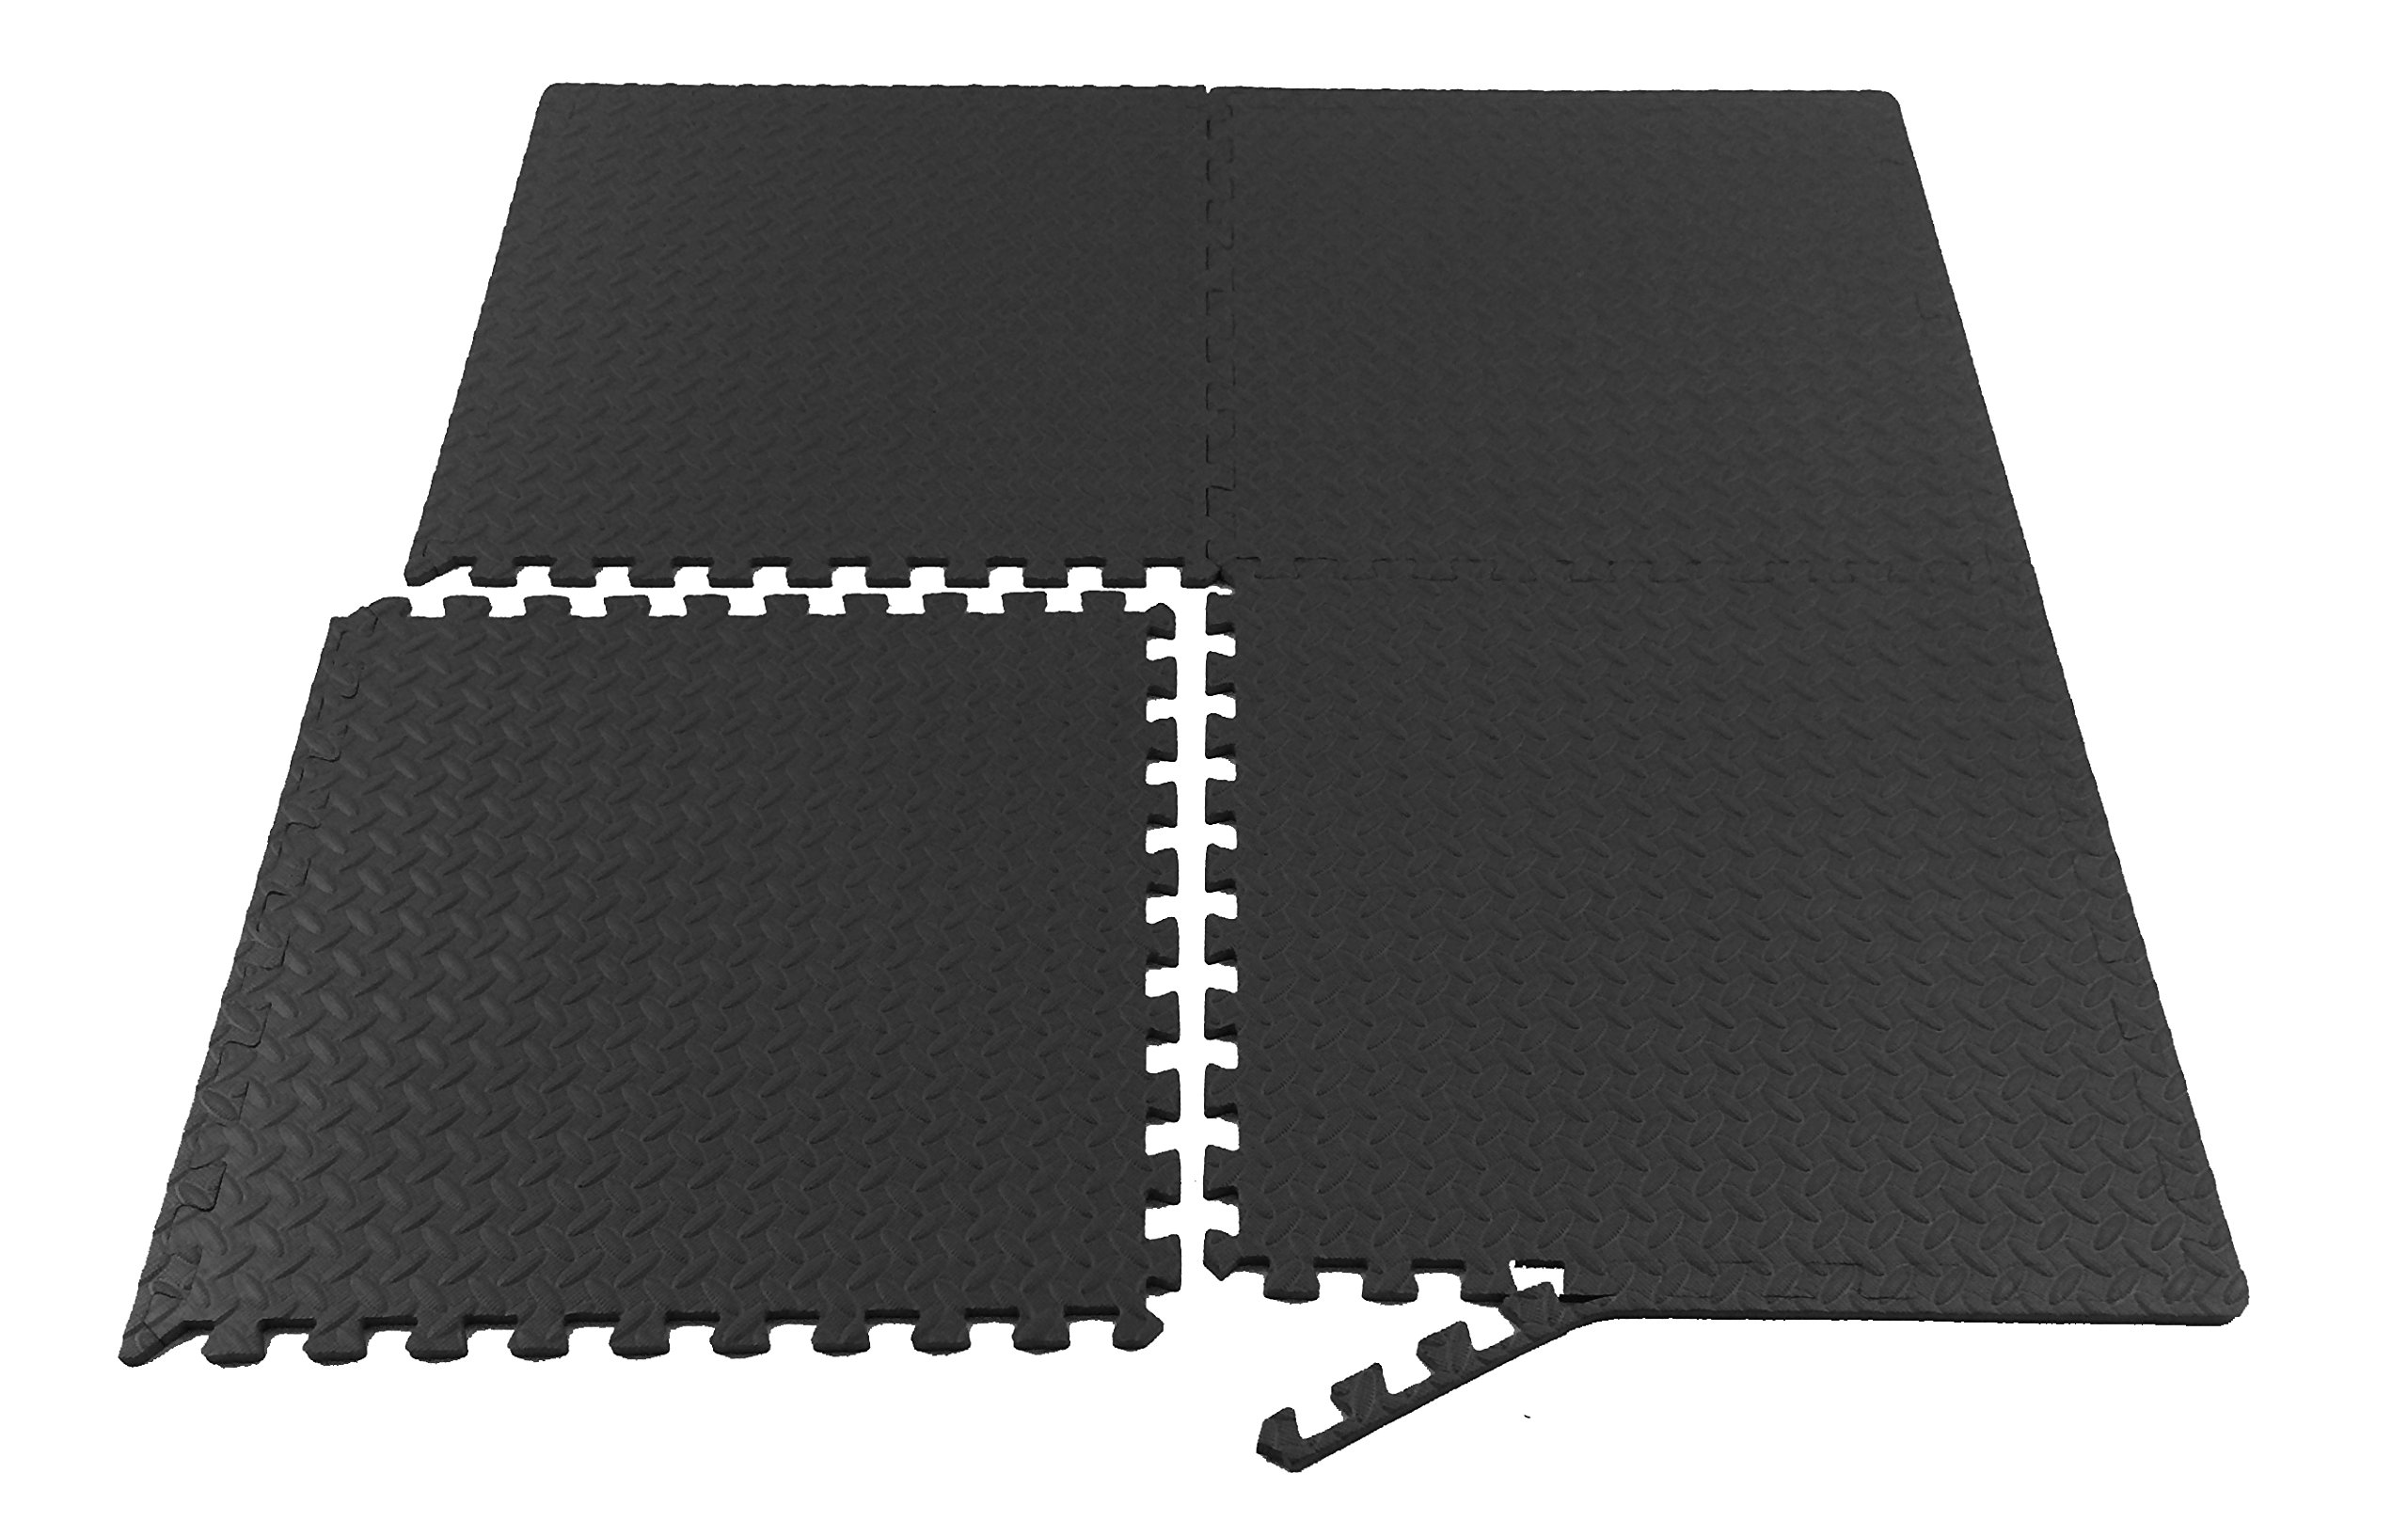 yoga protection floor other interlocking foam mats for item grey playro toys carpet perfect exercise garage